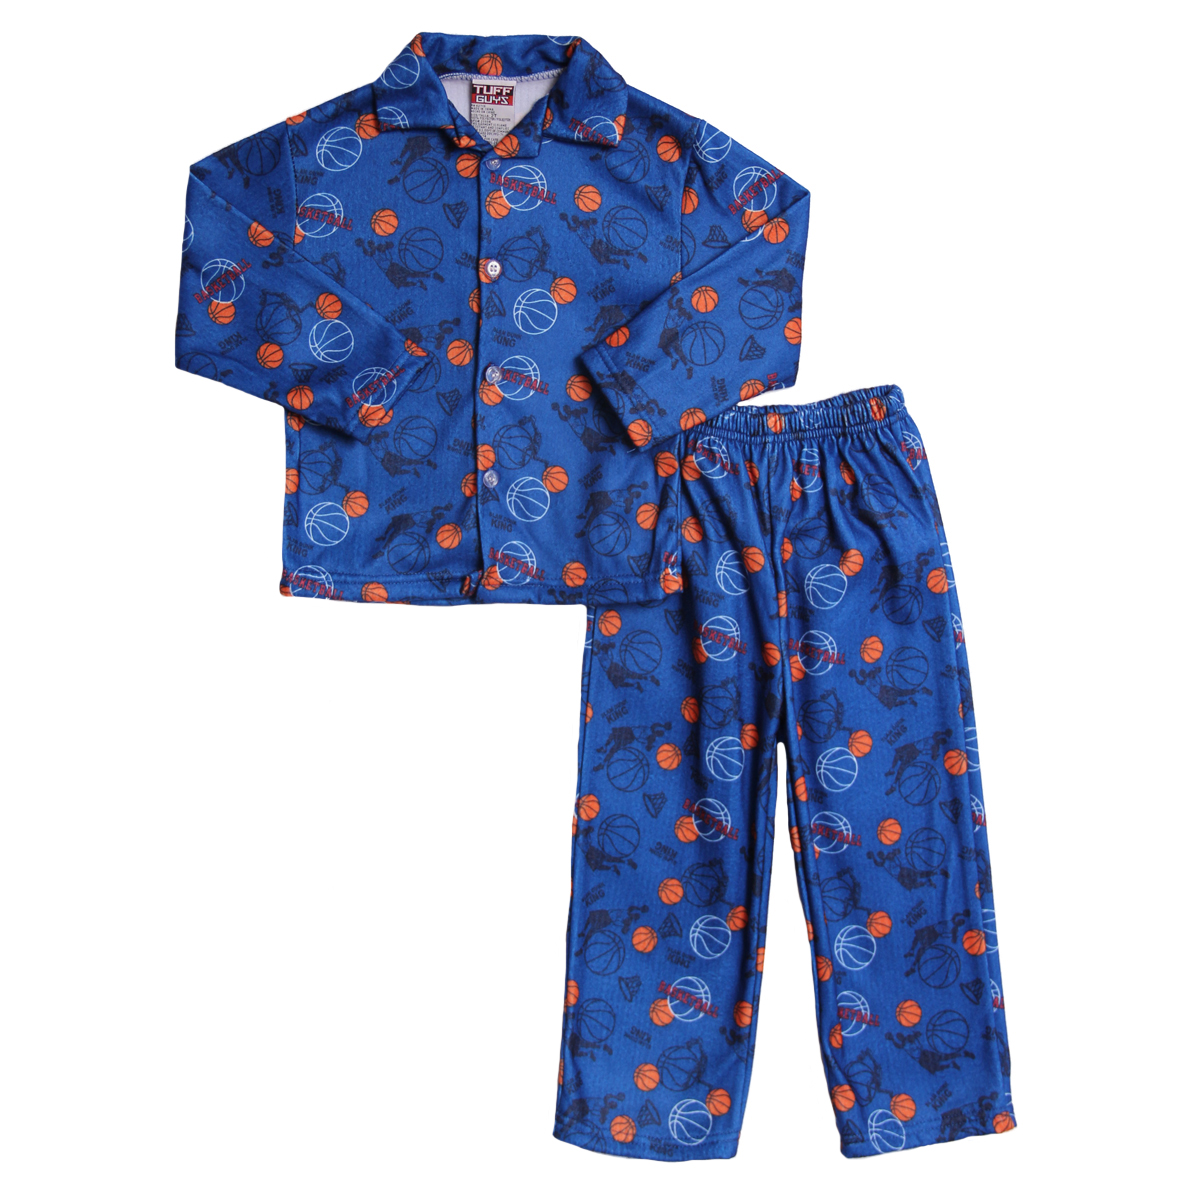 Tuff Guys Toddler Boys 2 Piece Blue Basketball Flannel Winter Pajamas Set at Sears.com